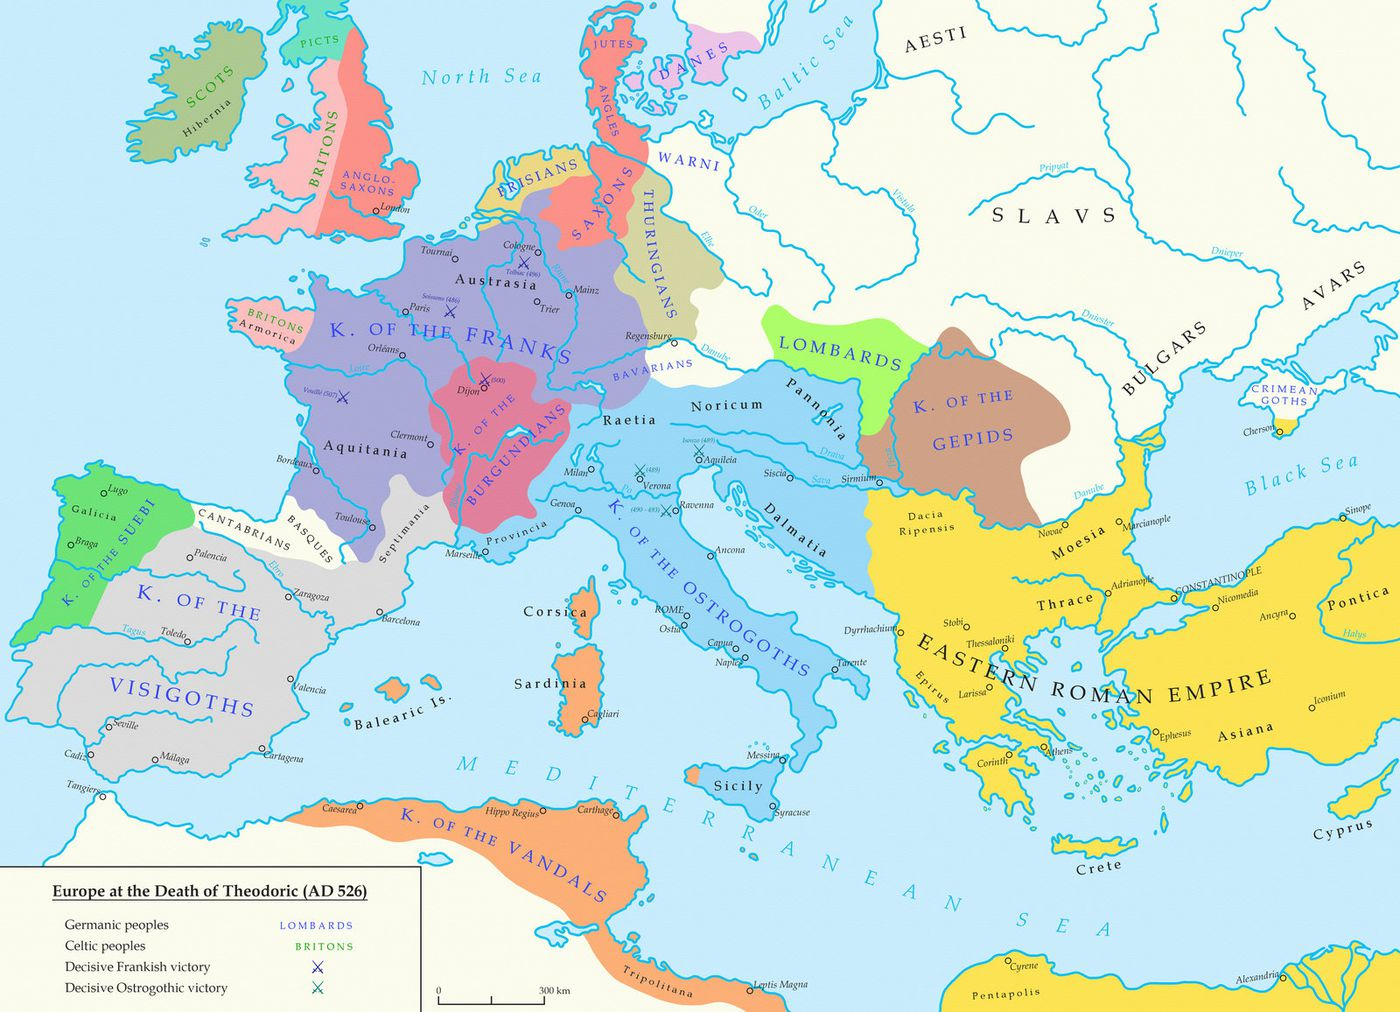 map of europe roman empire The Roman Empire Explained In 40 Maps Vox map of europe roman empire